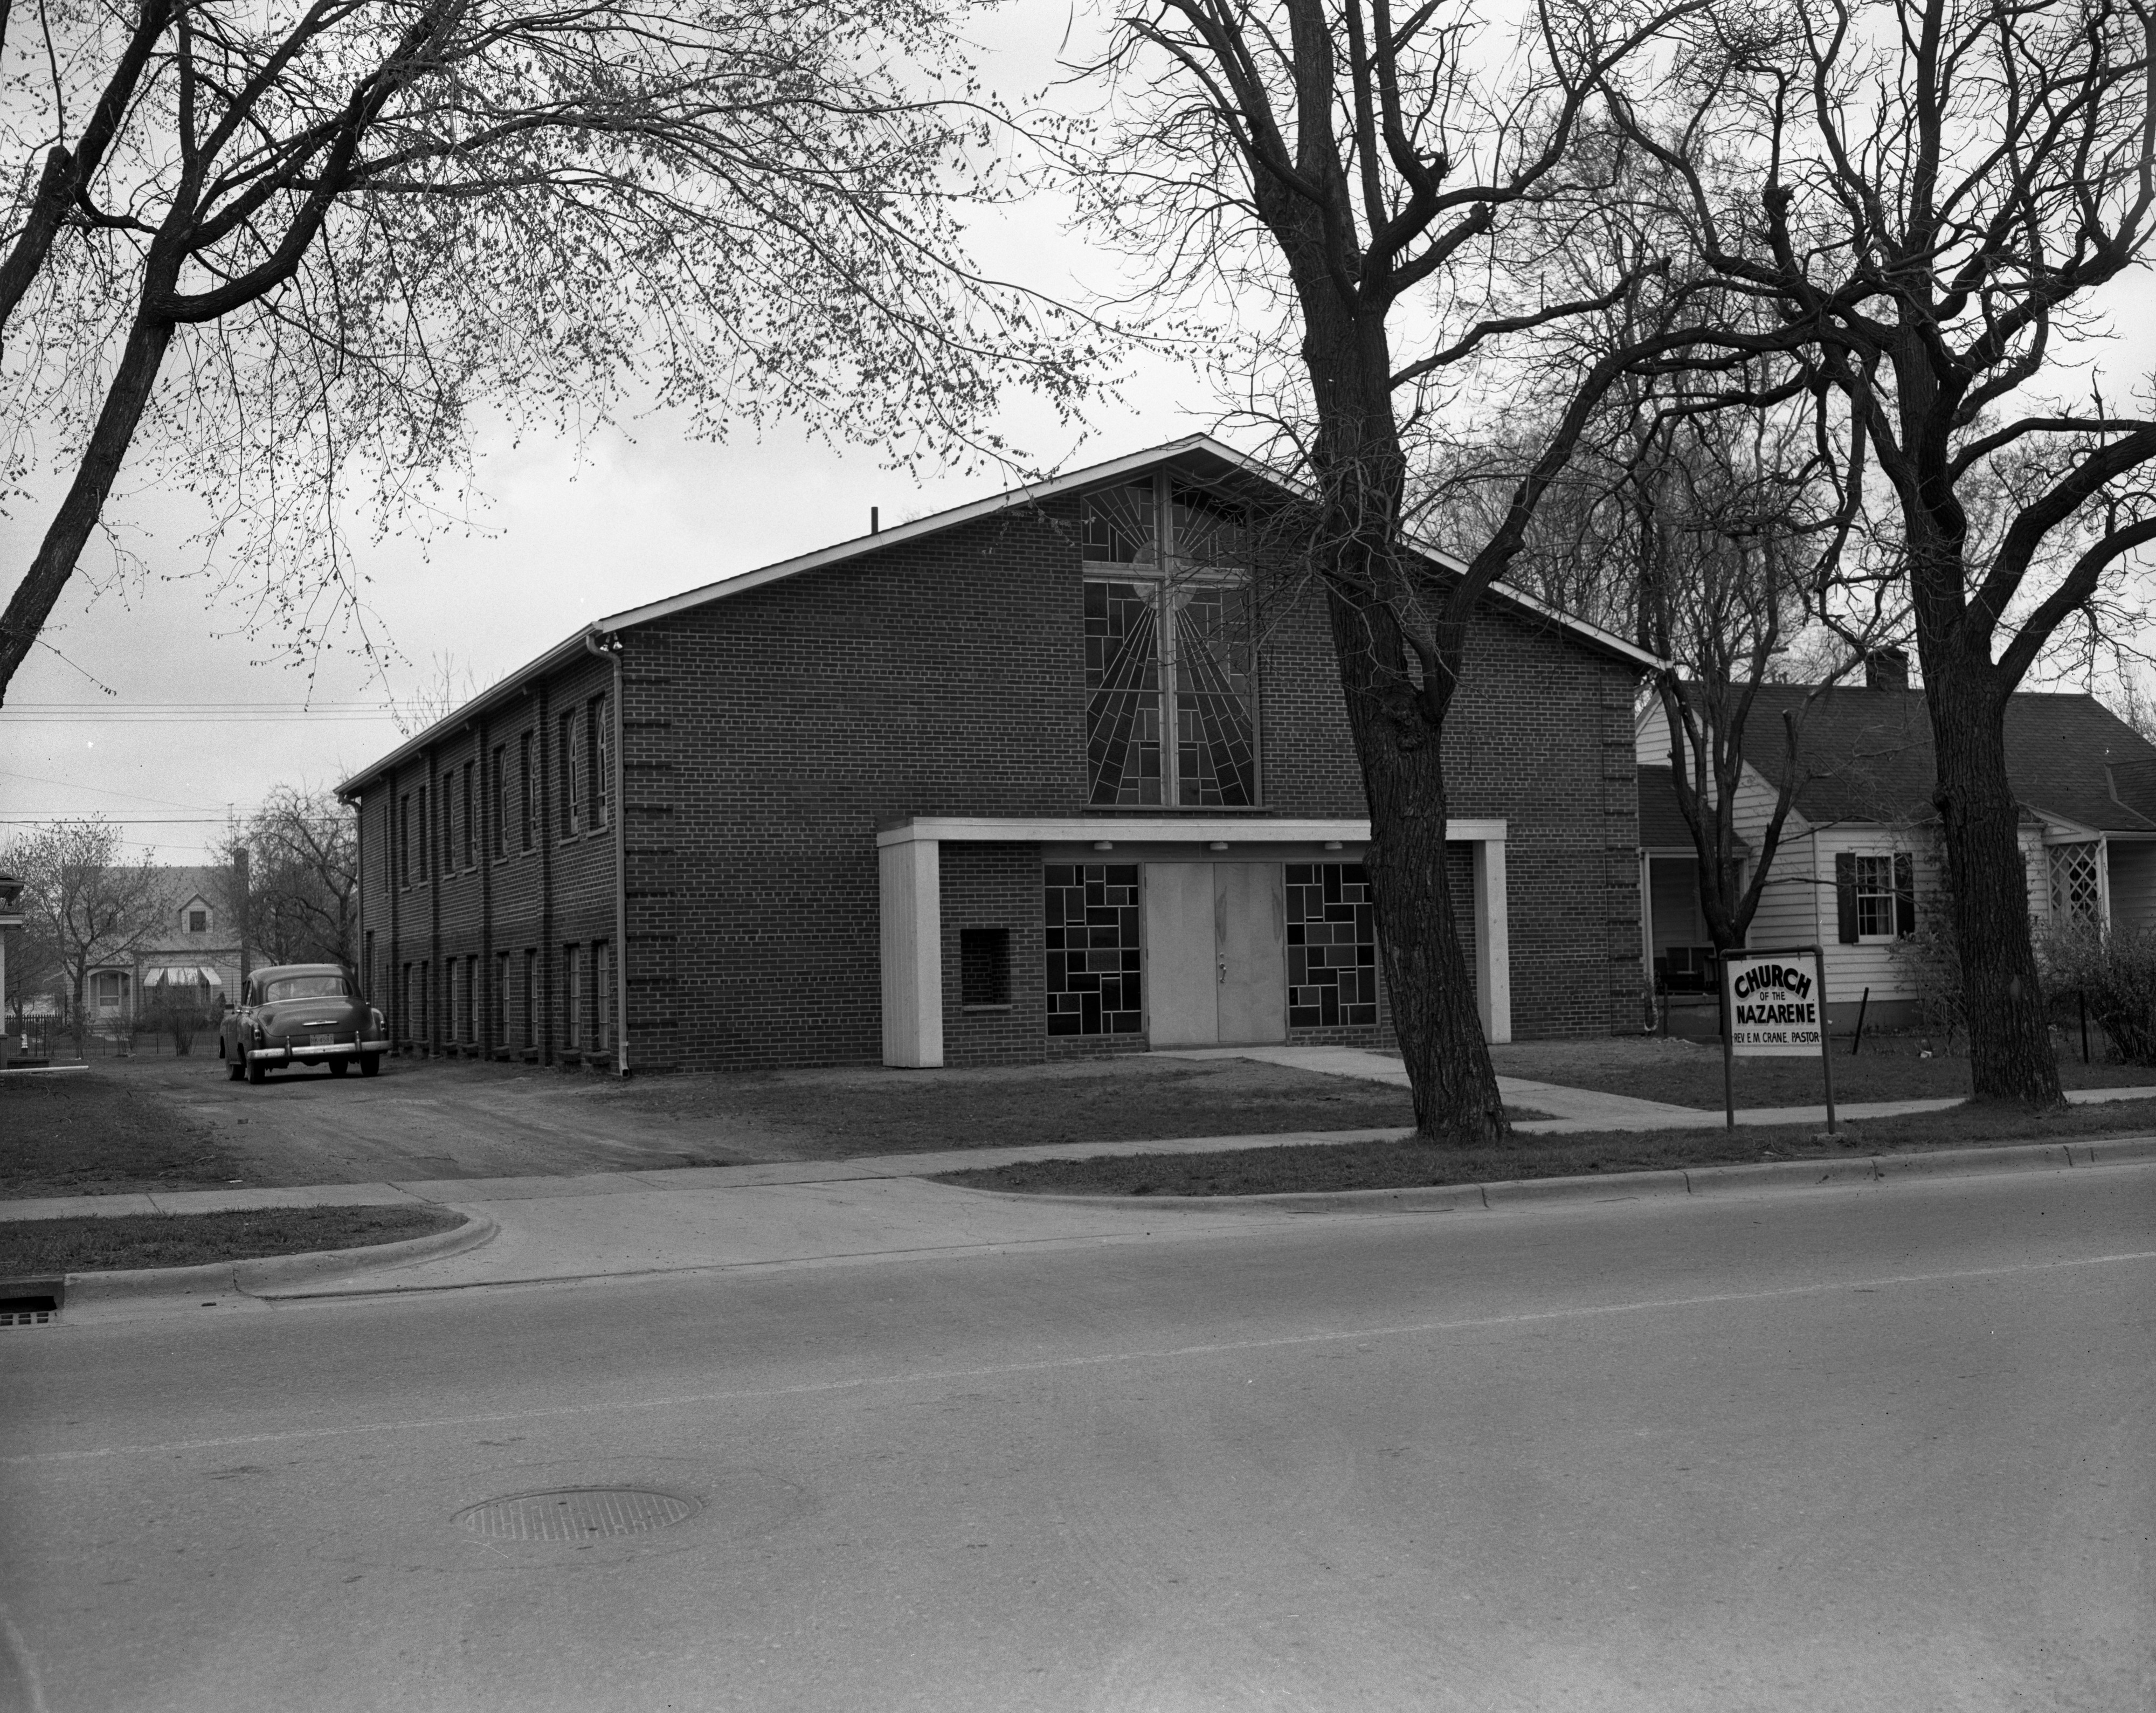 First Church of the Nazarene in Ypsilanti, April 1958 image